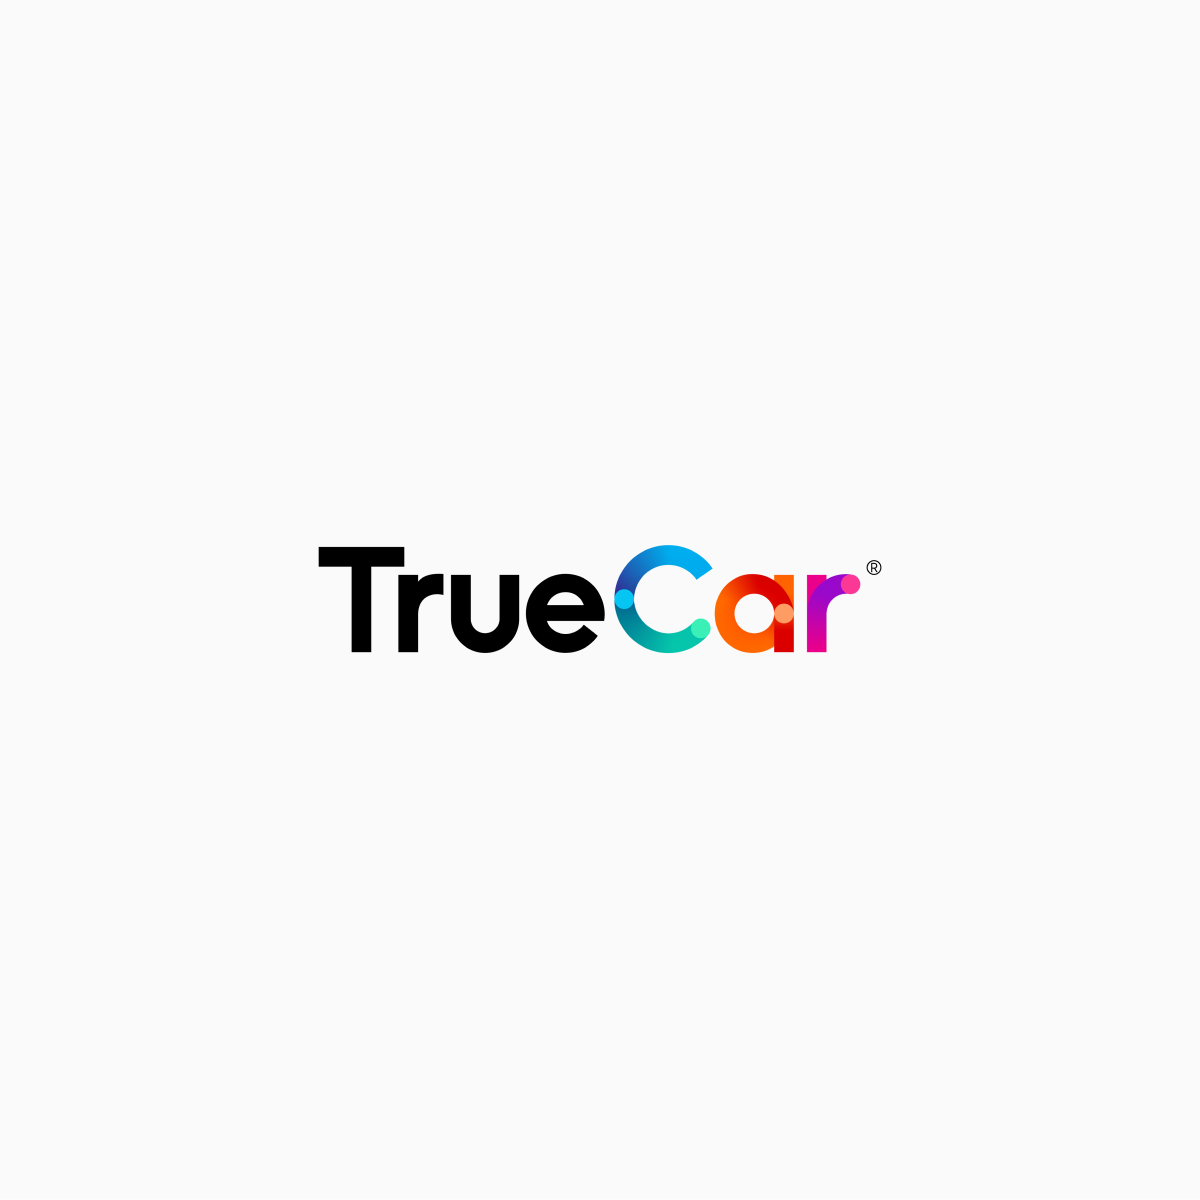 TrueCar boosts engagement and increases conversions with FullStory